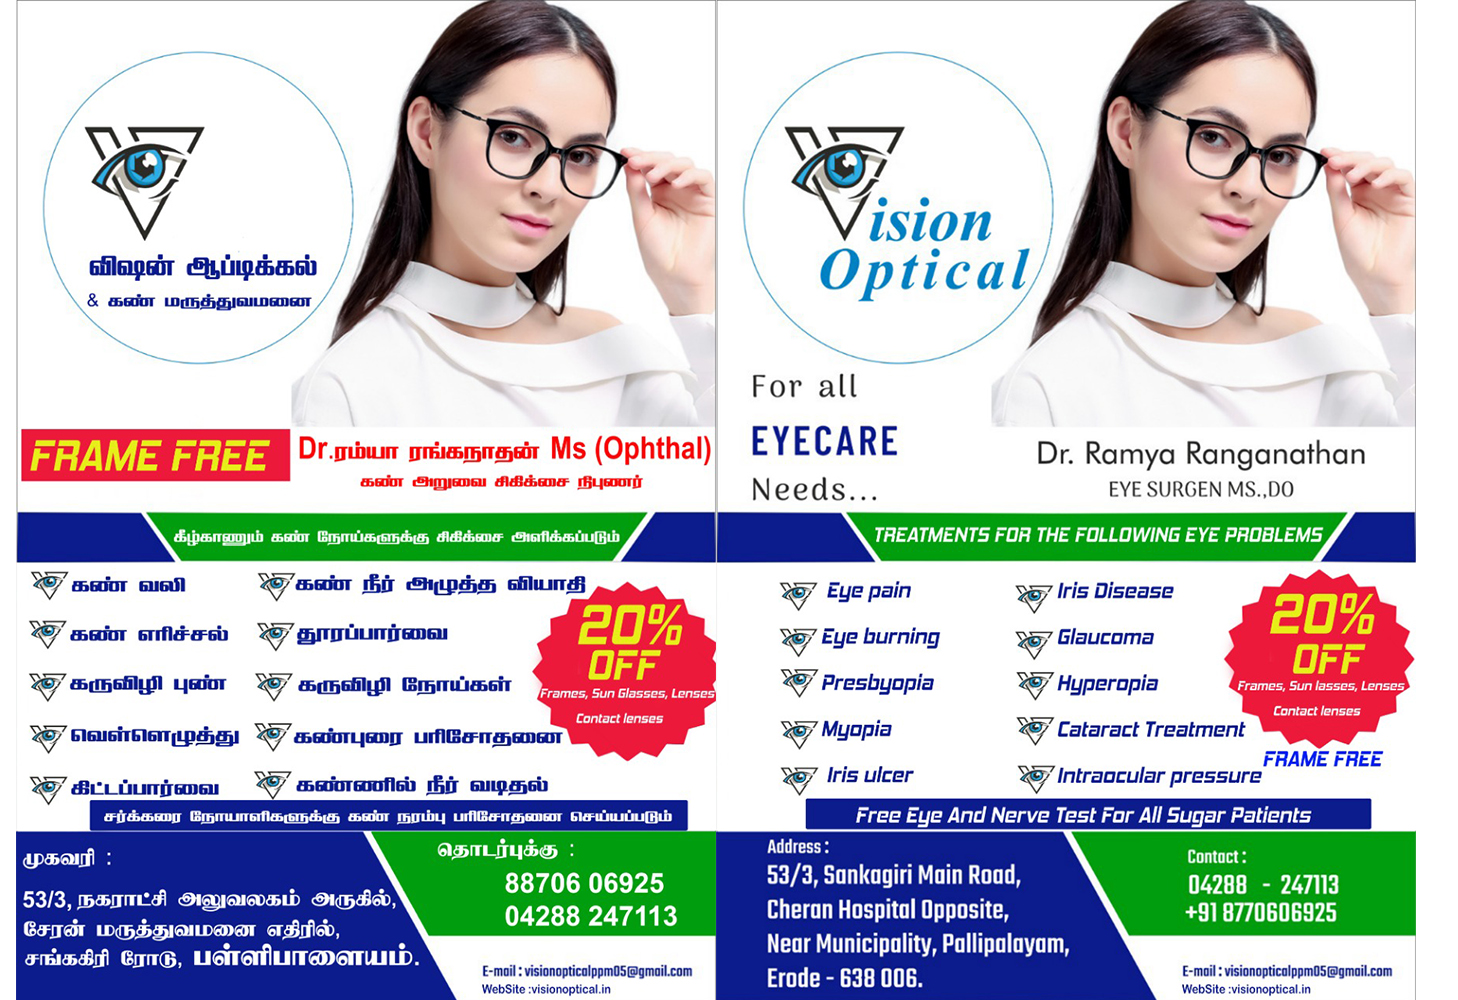 Vision Optical pamphlet